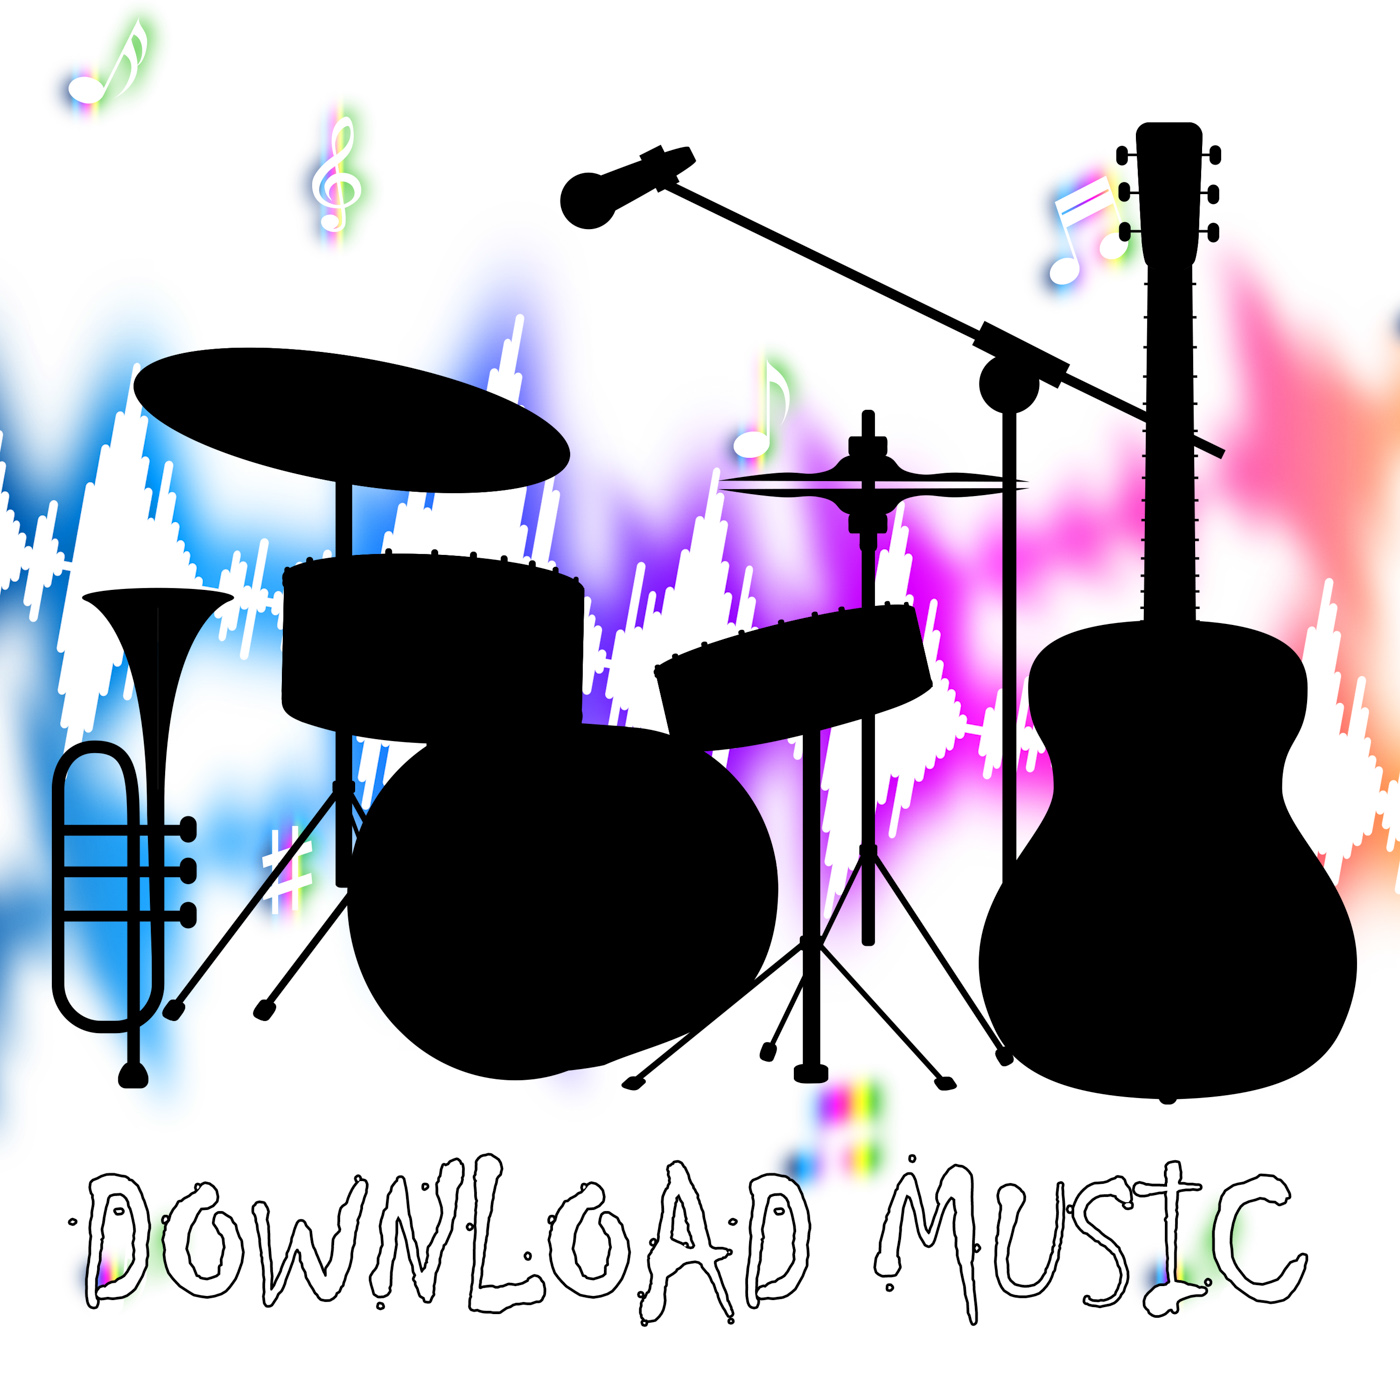 Download Music Represents Sound Track And Audio, Acoustic, Musical, Web, Track, HQ Photo